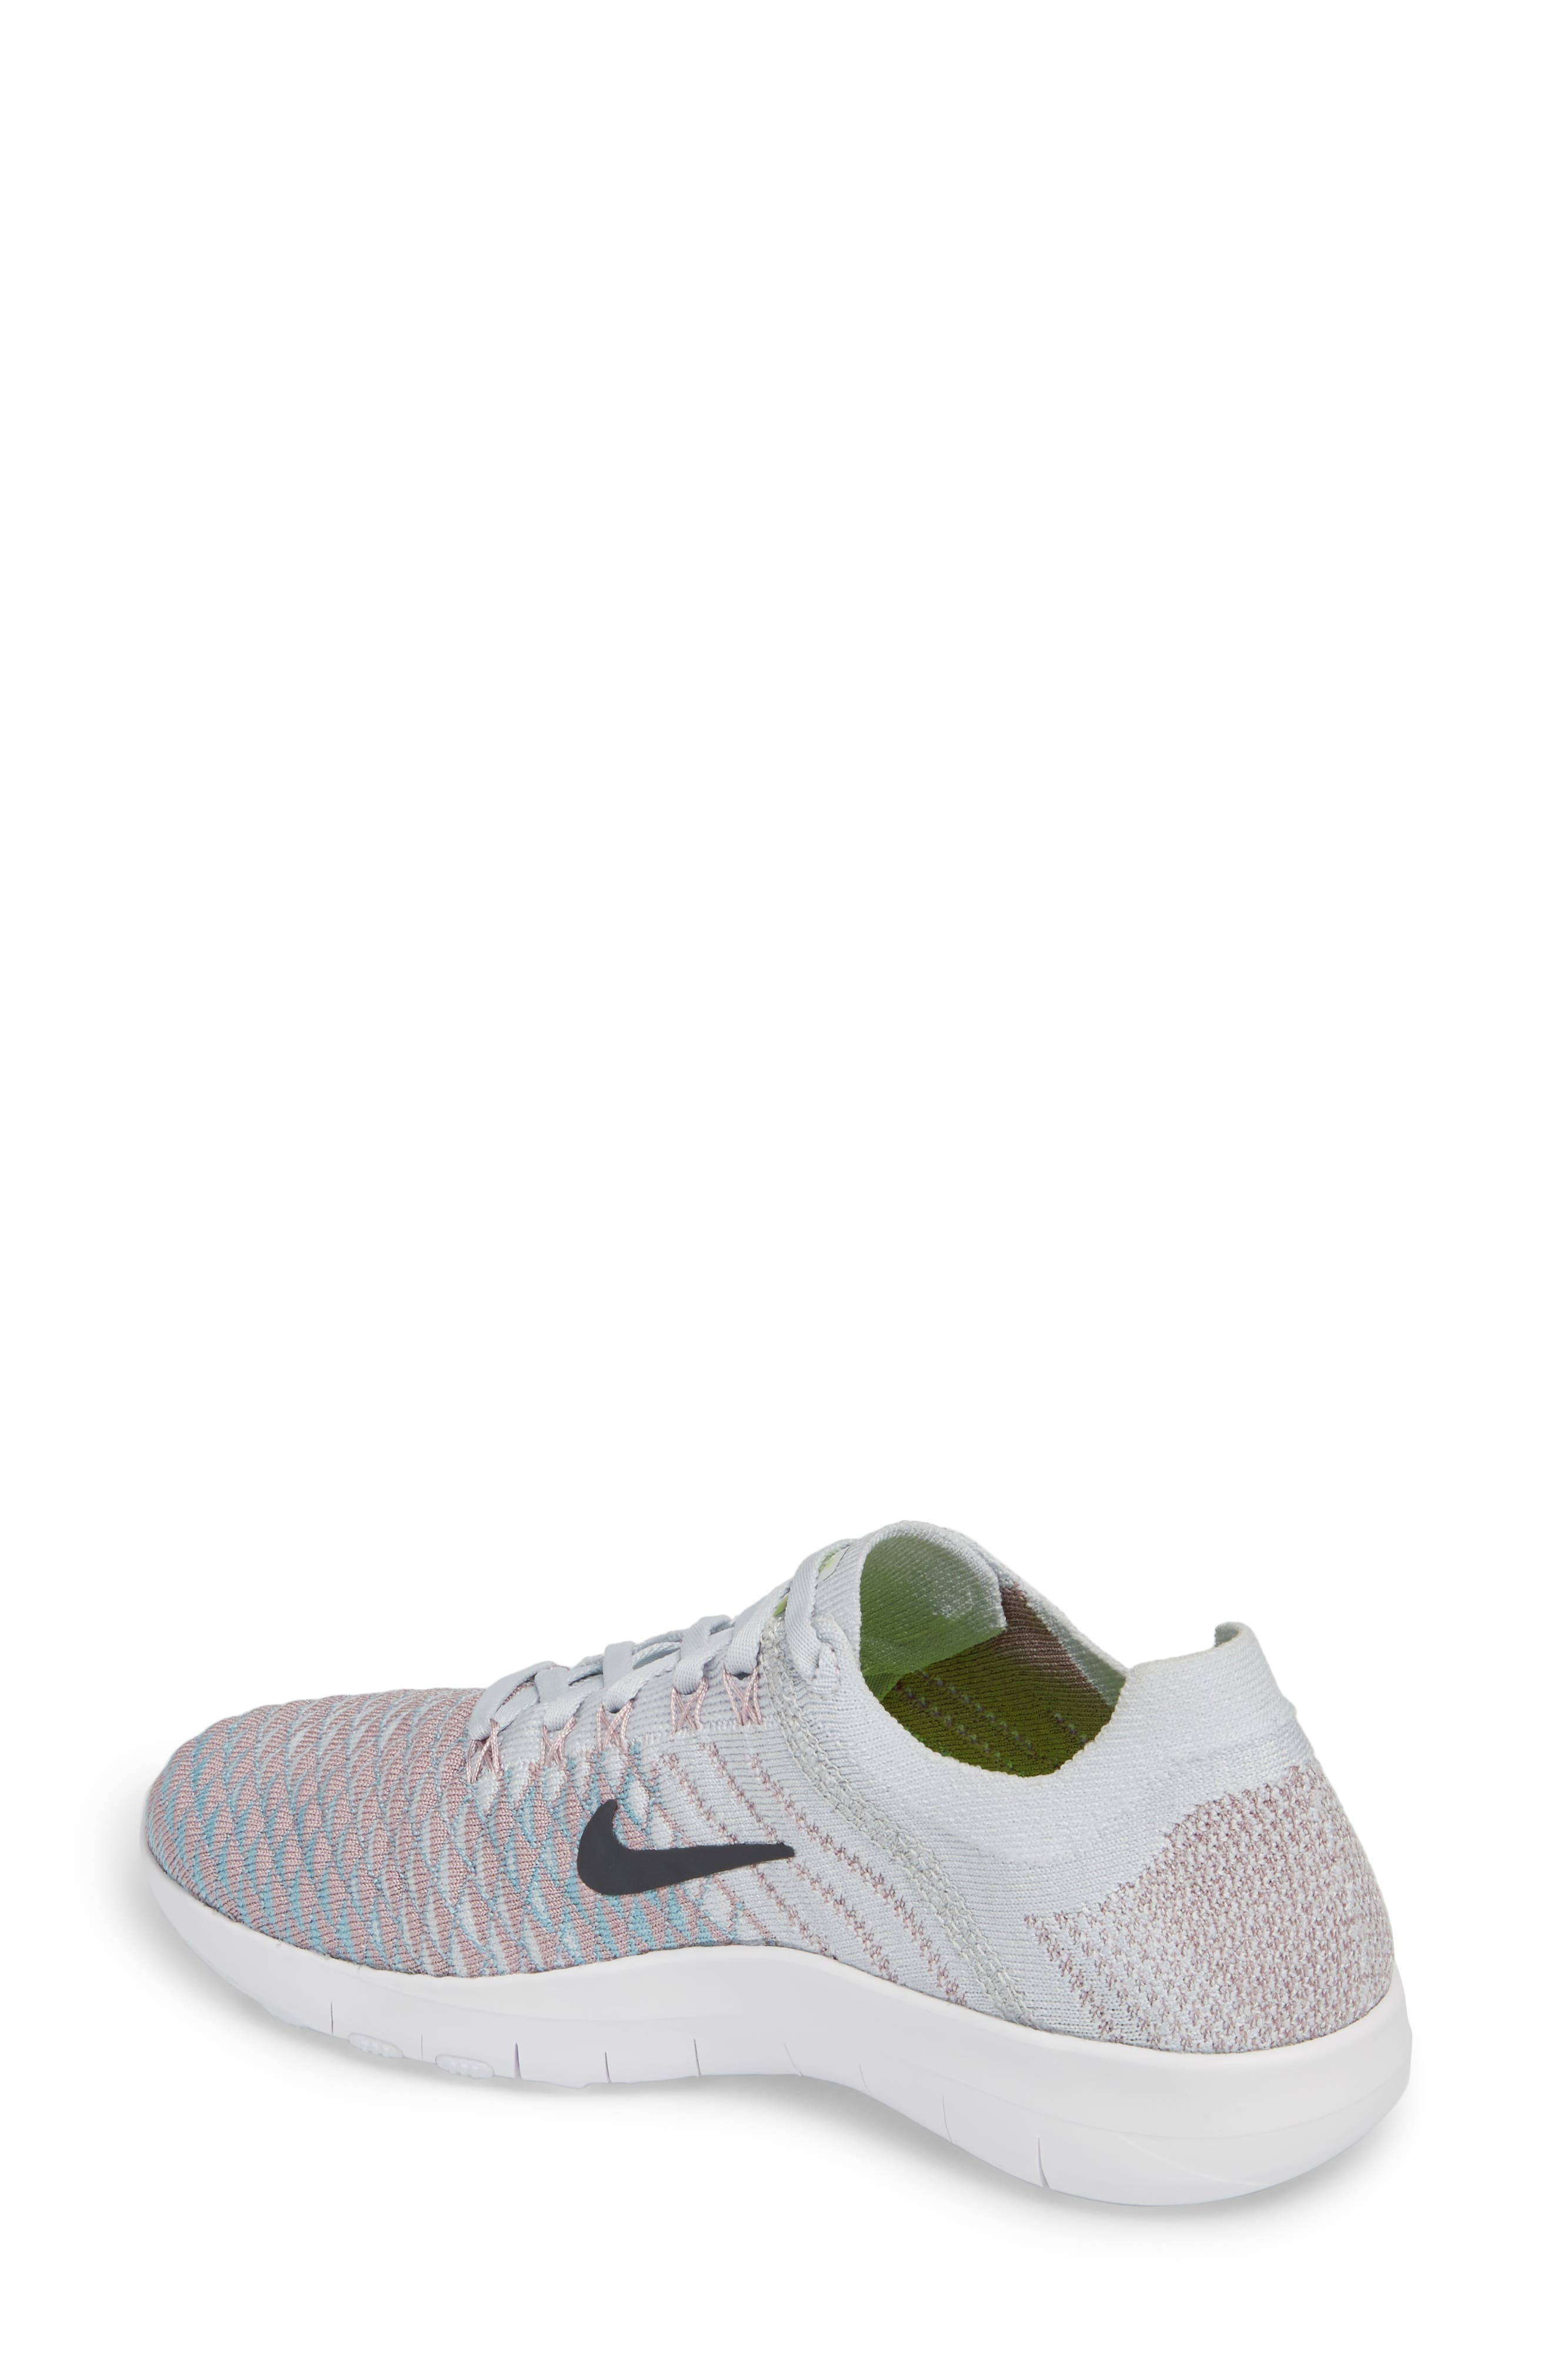 Free TR Flyknit 2 Training Shoe,                             Alternate thumbnail 6, color,